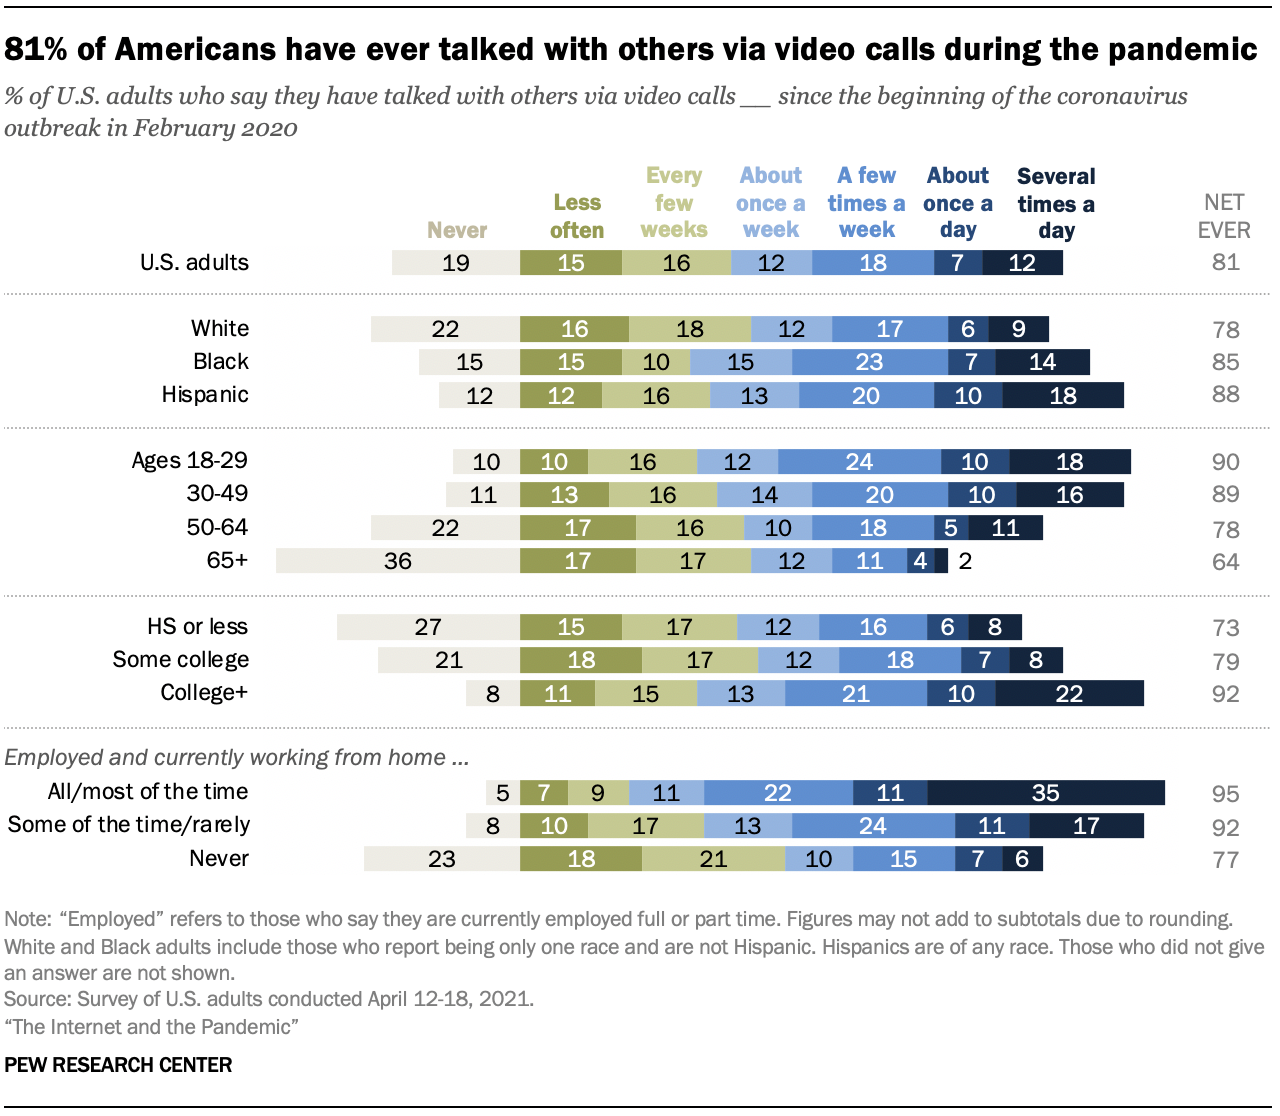 81% of Americans have ever talked with others via video calls during the pandemic